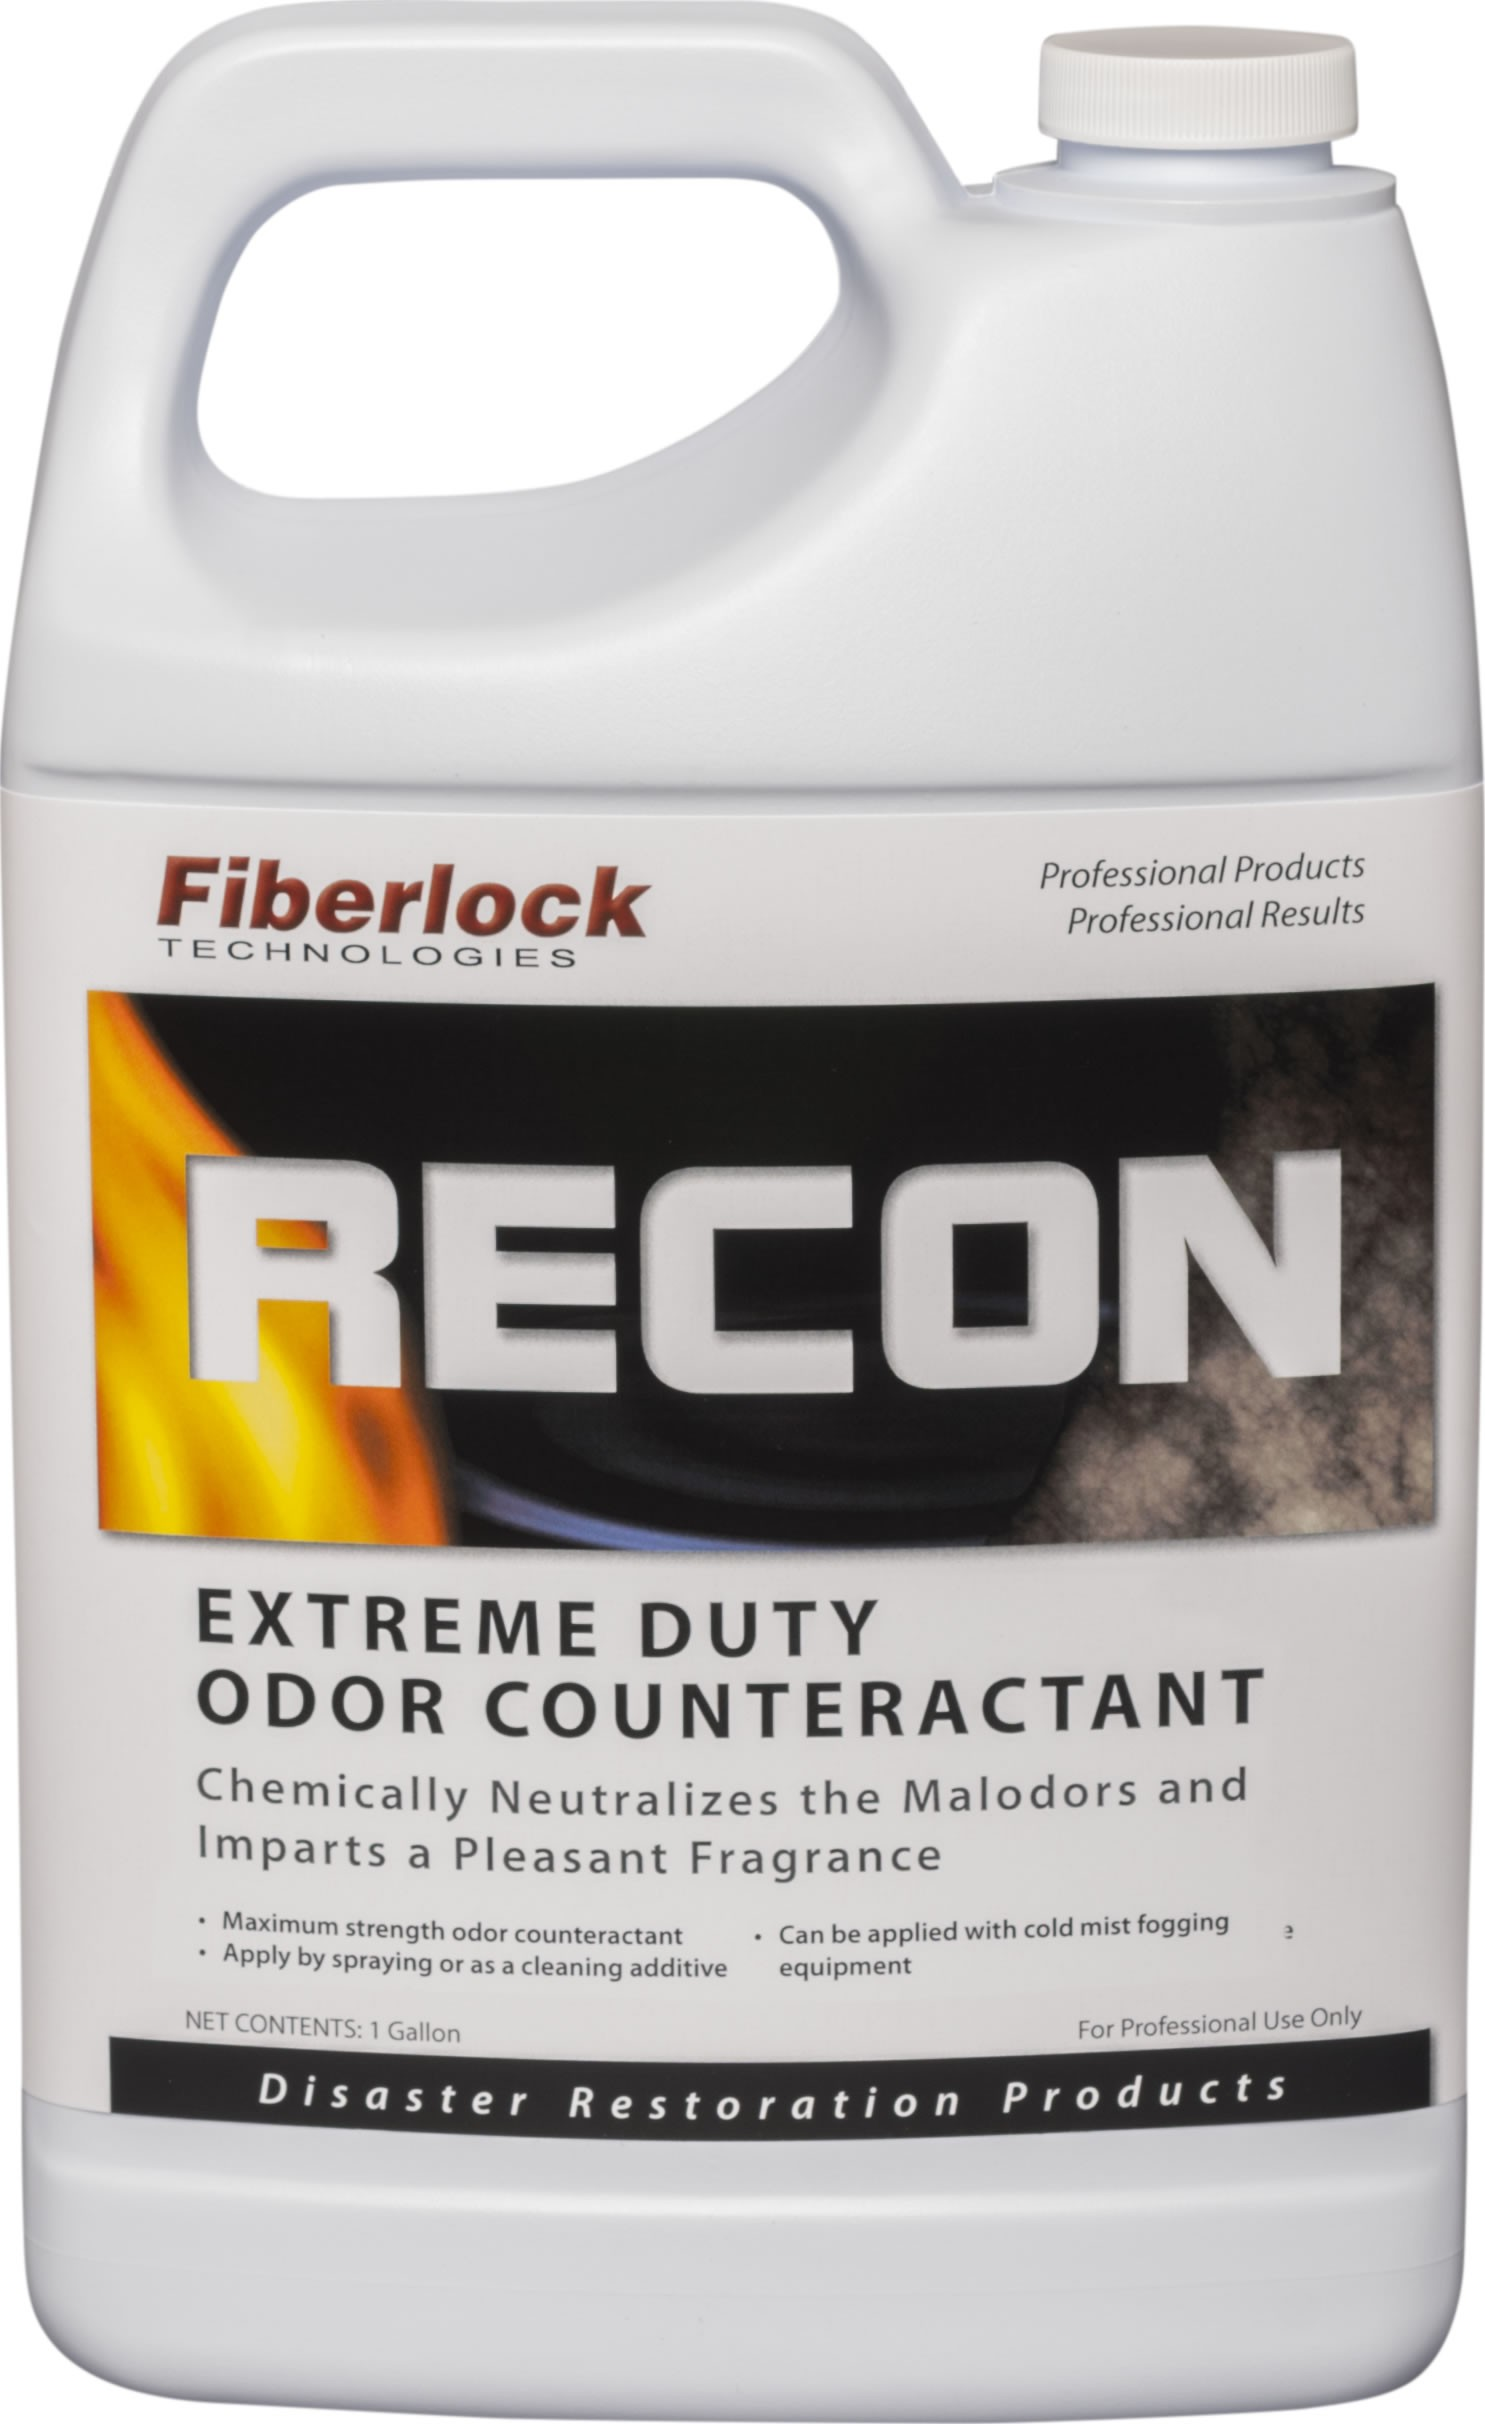 Fiberlock RECON Extreme Duty Odor Counteract 1G (4/Case)